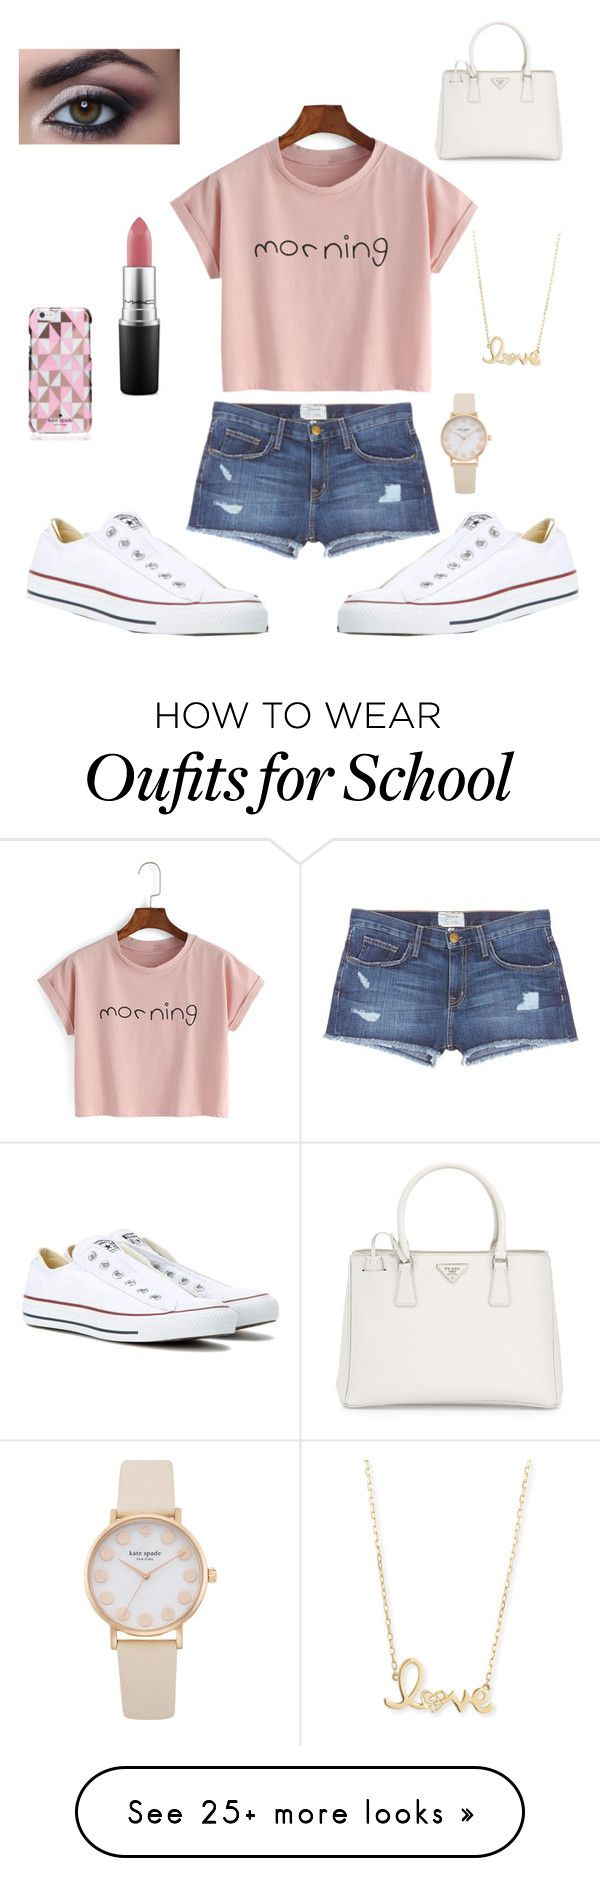 """School"" by lisanne-schapendonk on Polyvore featuring Current/Elliott, Kate Spade, Converse, MAC Cosmetics, Prada, Sydney Evan, Summer, school, everyday and goals"